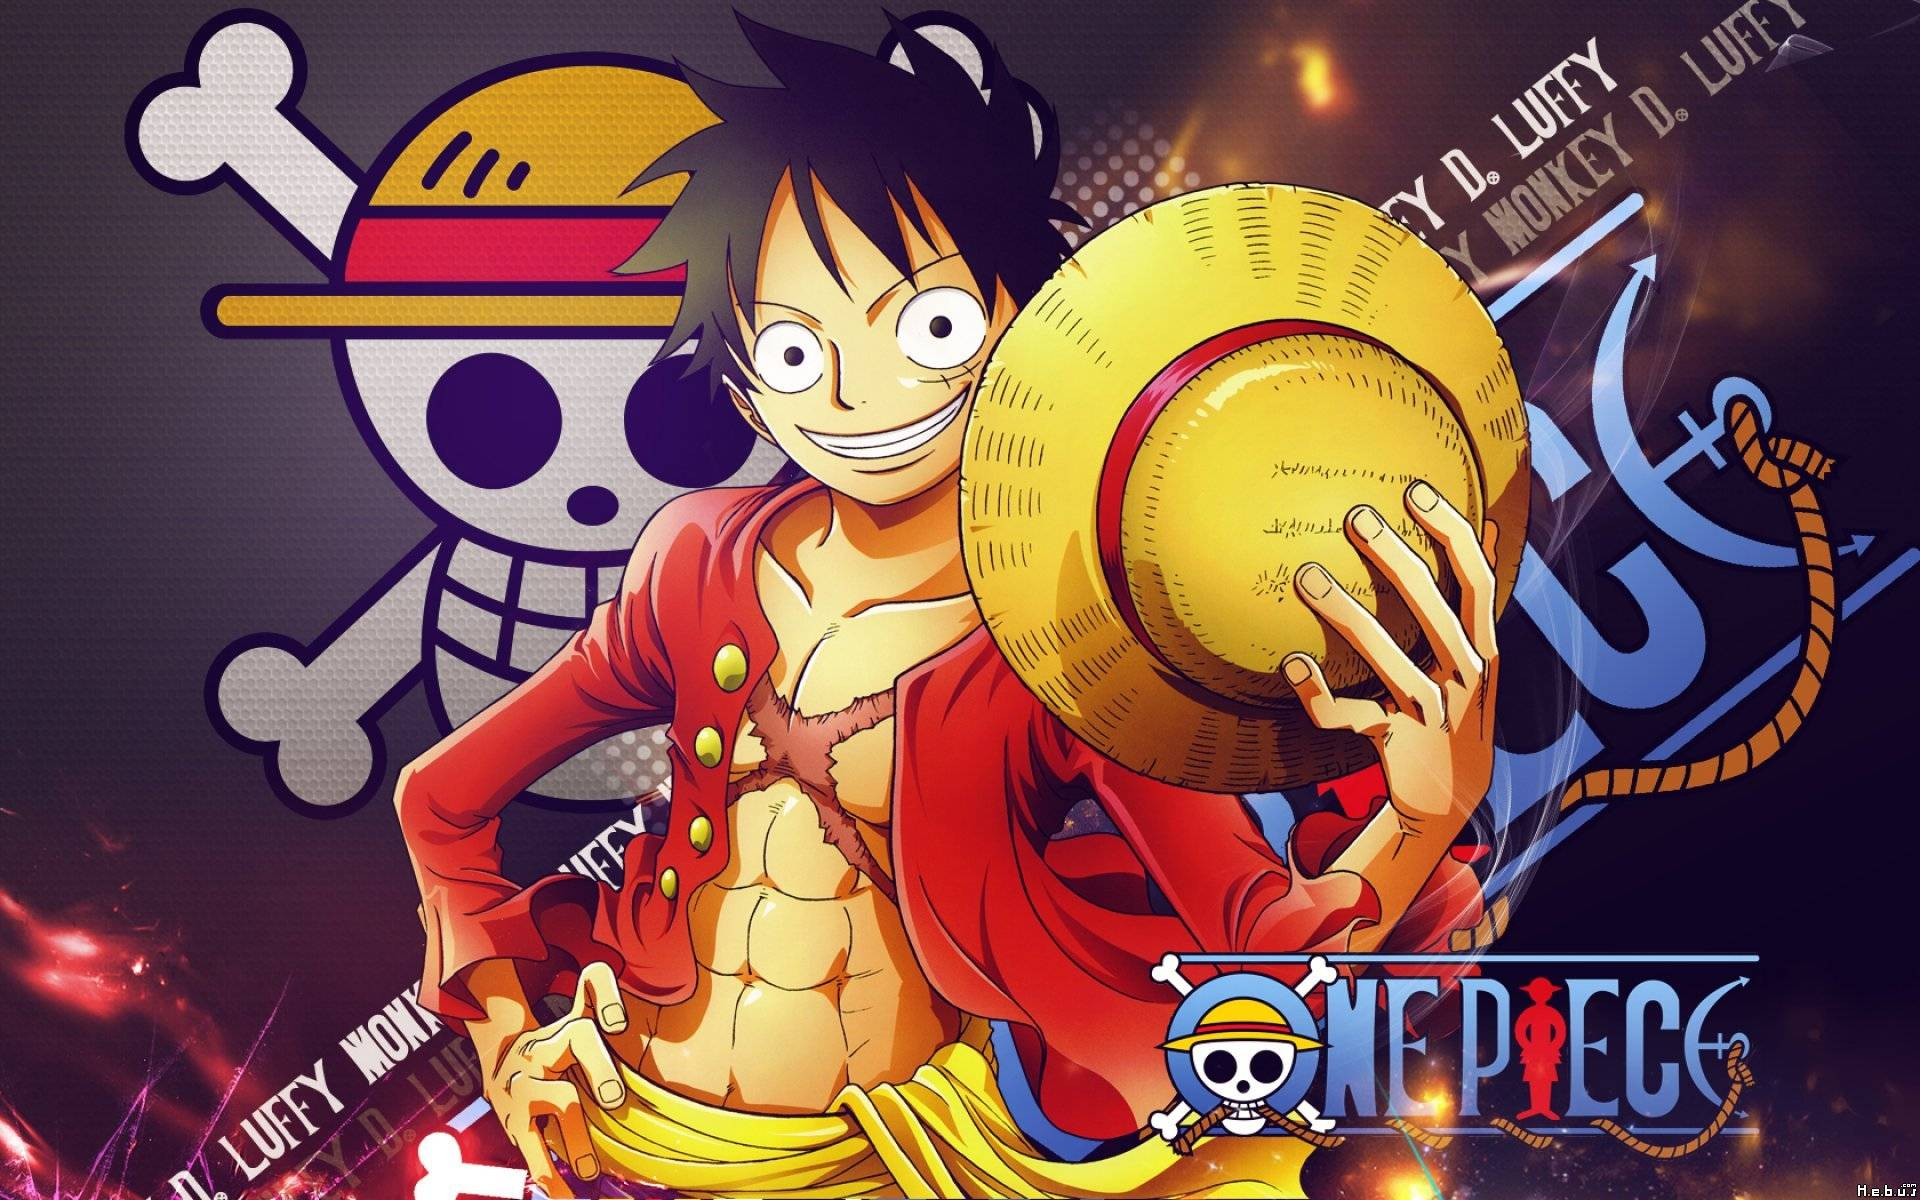 stuffpoint one piece images wallpapers luffy new world hd tweet 1920x1200